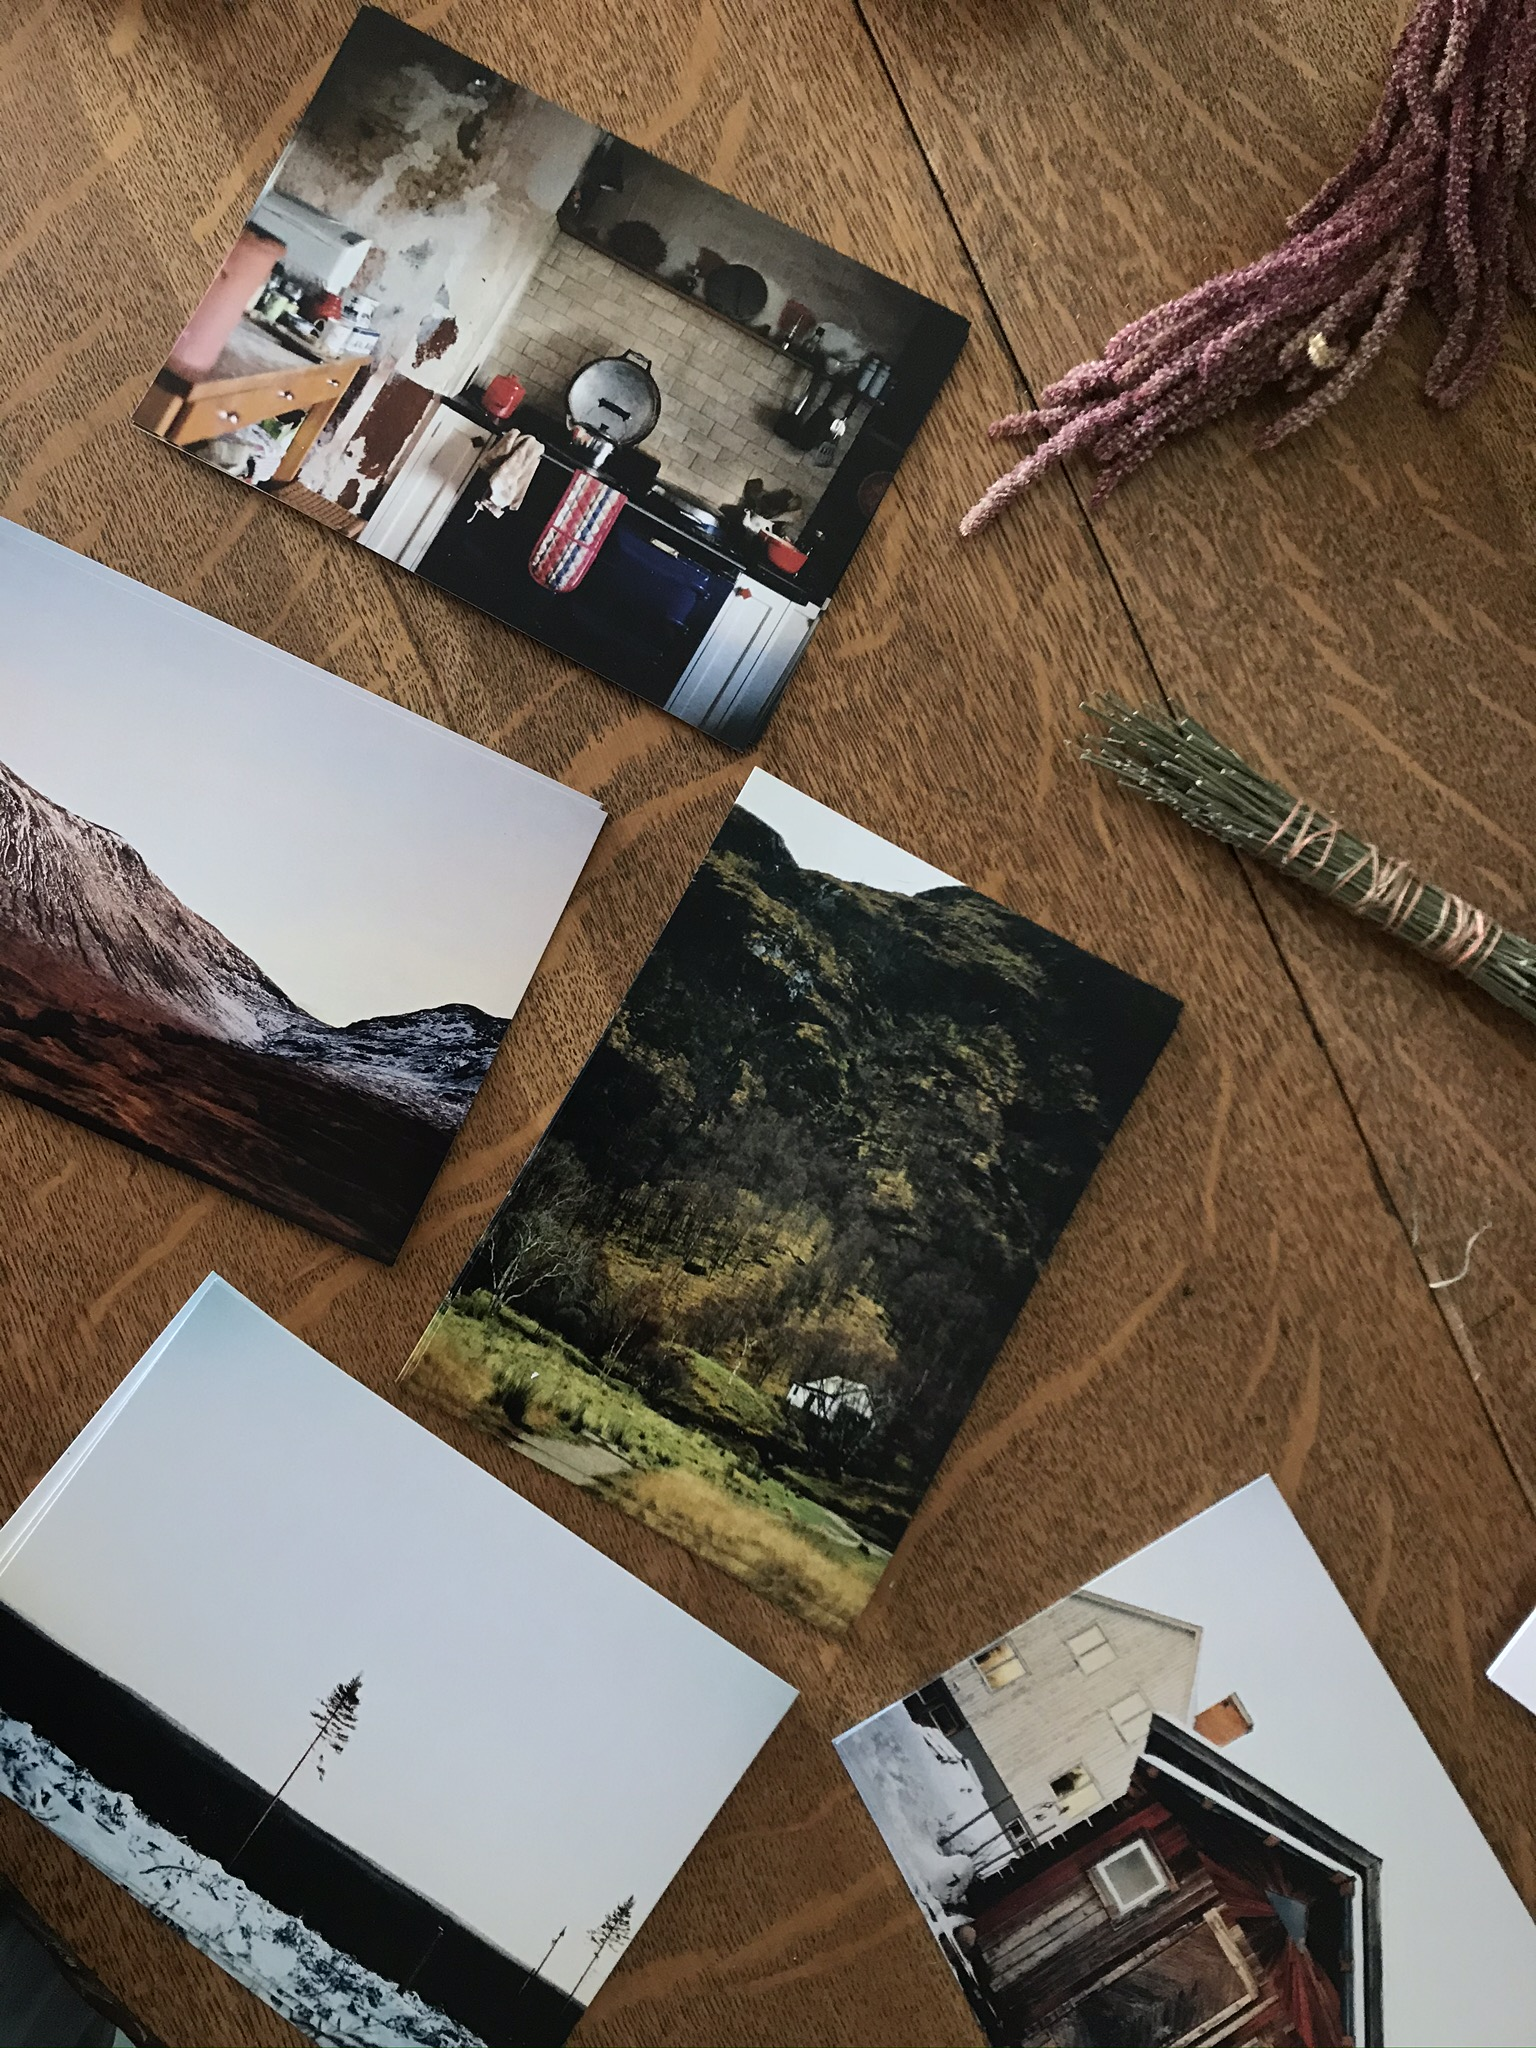 A set of postcards from Scotland, Sweden, and Wales.